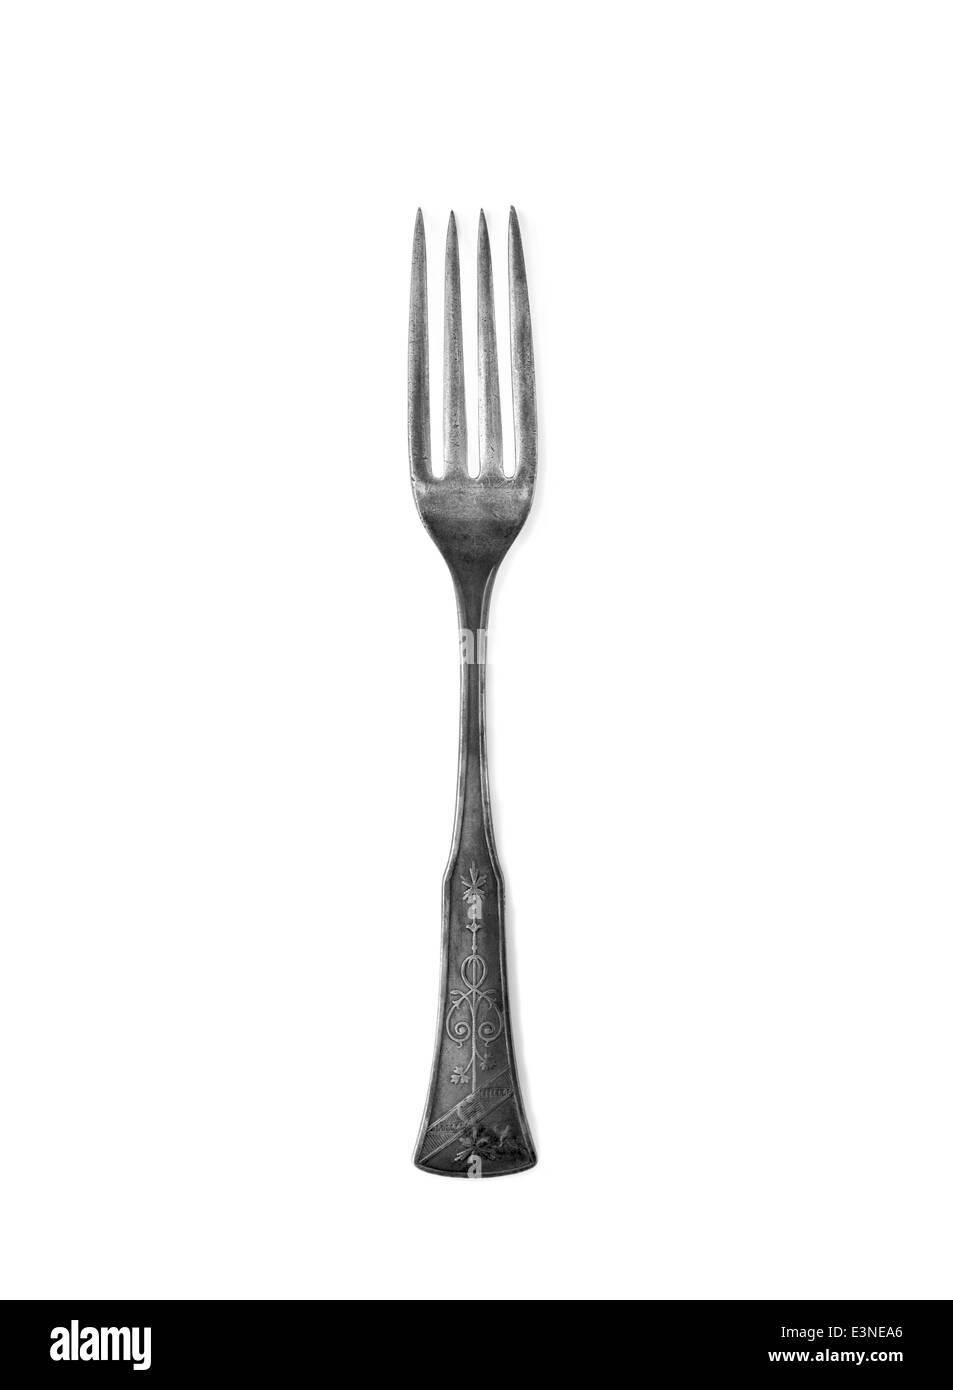 Vintage Kitchen Fork on a white background - Stock Image